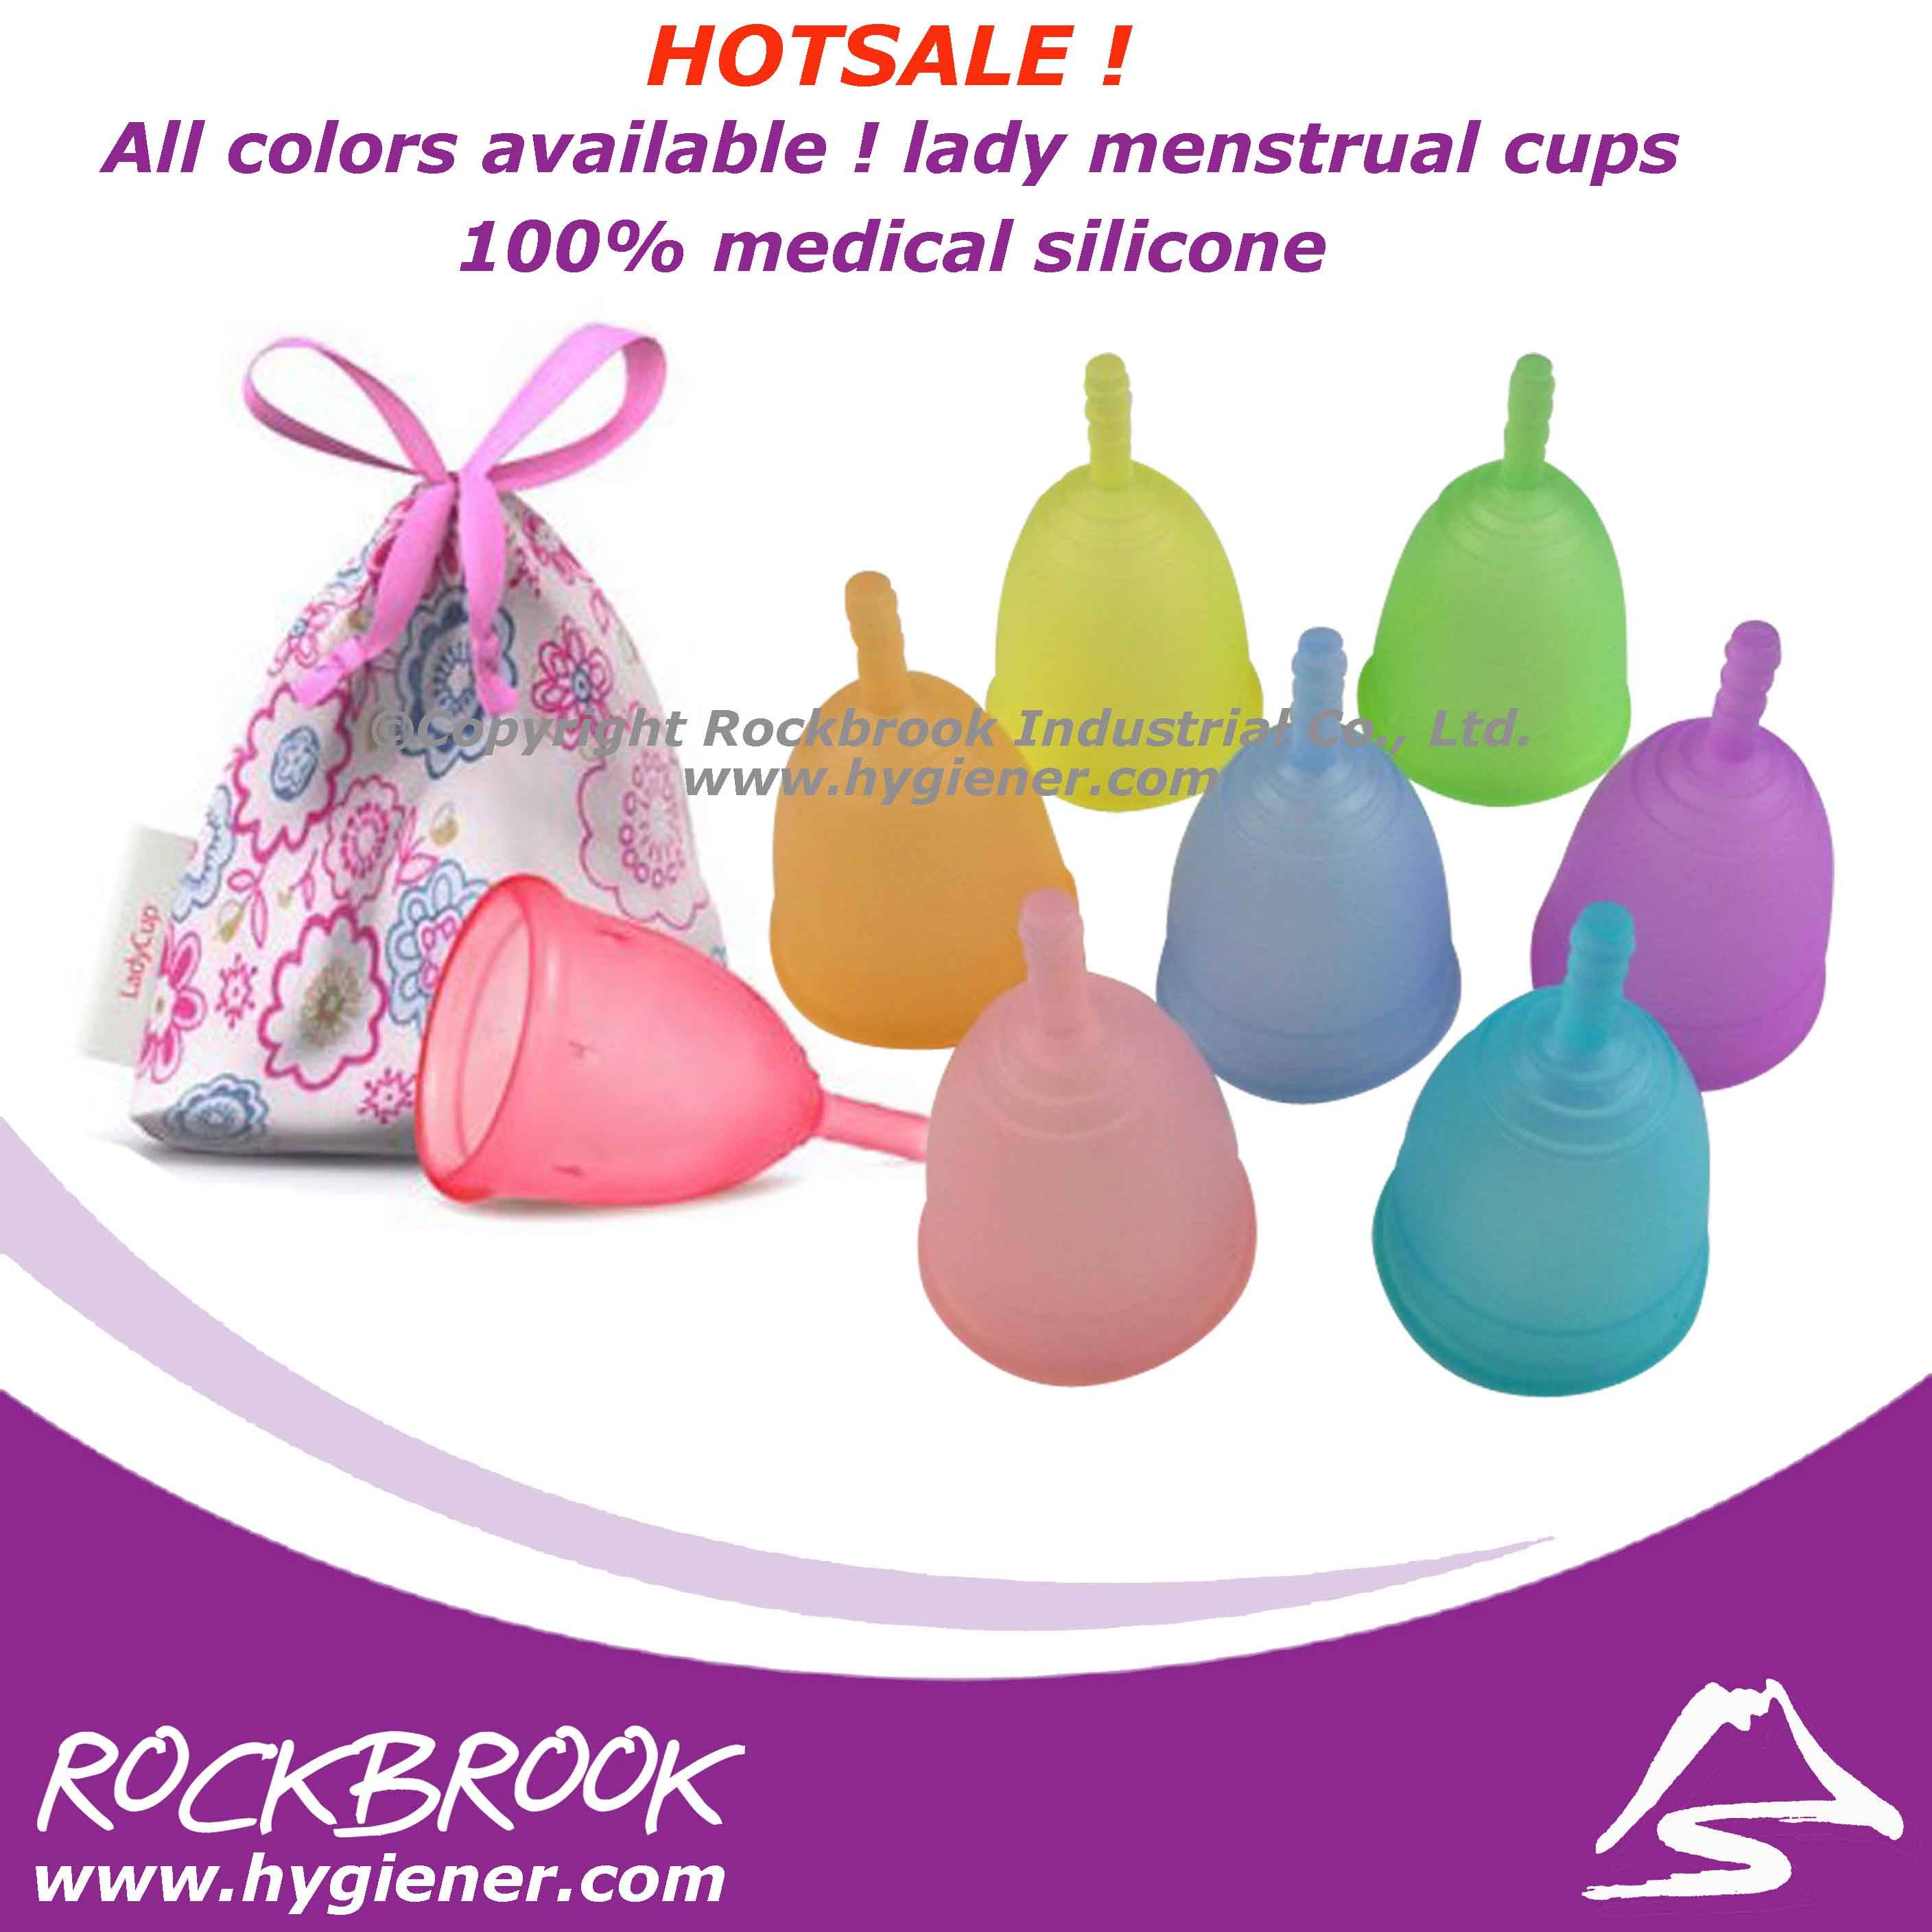 2013 HOTSALE! 100% platinum medical silicone lady menstrual cups,silicone soft cup